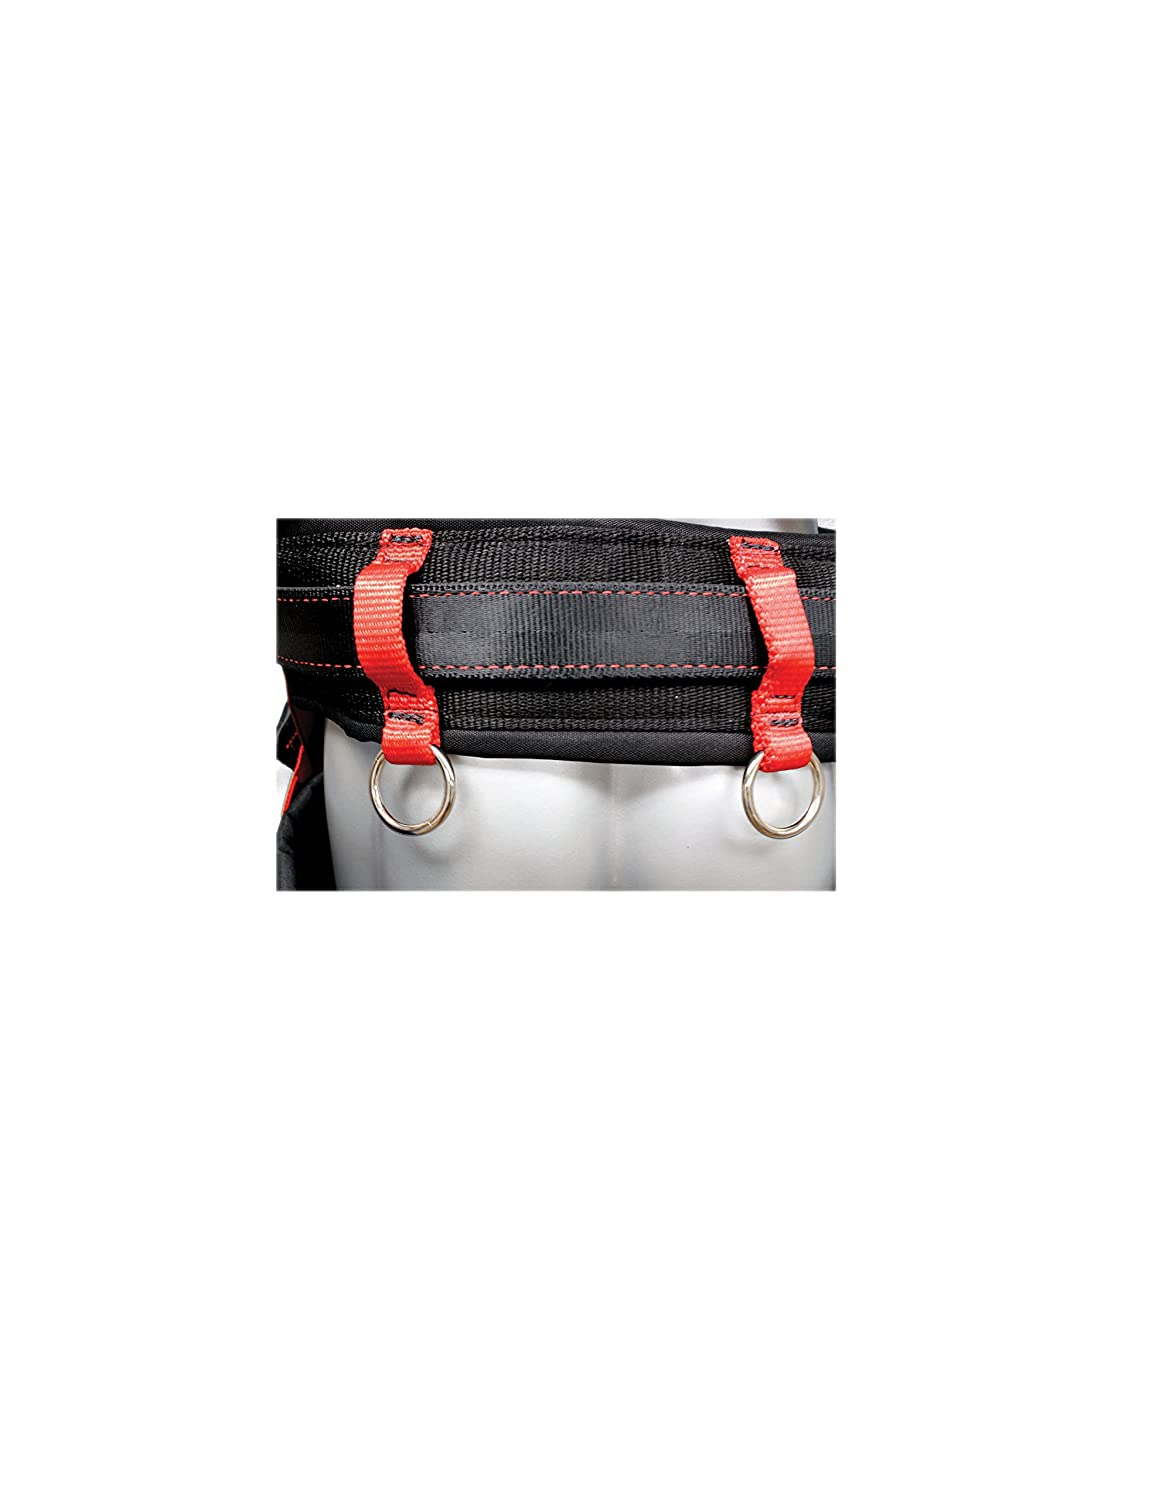 Small Elk River 66611 EagleTower Polyester//Nylon LE 6 D-Ring Harnesses with Quick-Connect Buckles